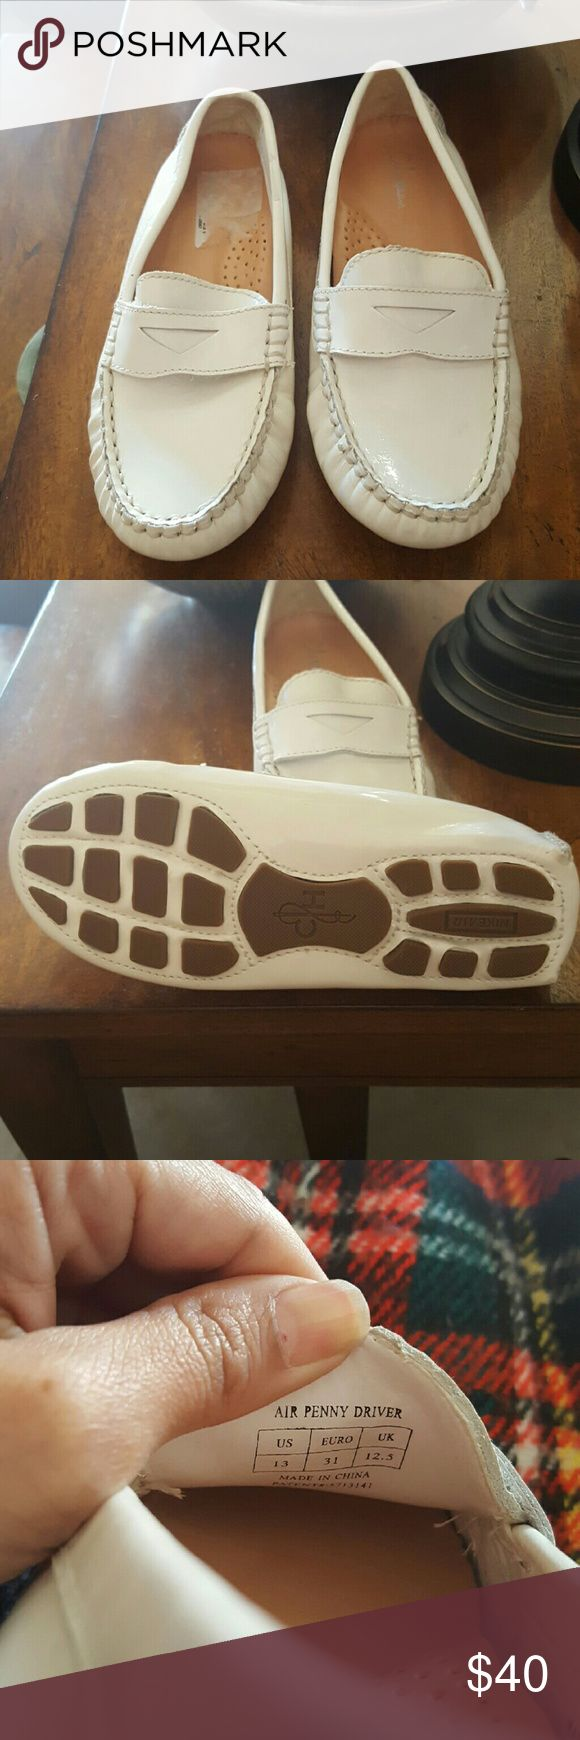 Cole Haan Air Penny drivers white Patent girls 13 Cole Haan Nike Air Girls white patent leather loafers Size 13  NEW NO BOX   TRIED TO REMOVE STICKER OFF INSOLE  NO TRADES  NO LOWBALL OFFERS  NO NEGOTIATING OVER COMMENT, USE OFFER BUTTON Cole Haan Shoes Moccasins